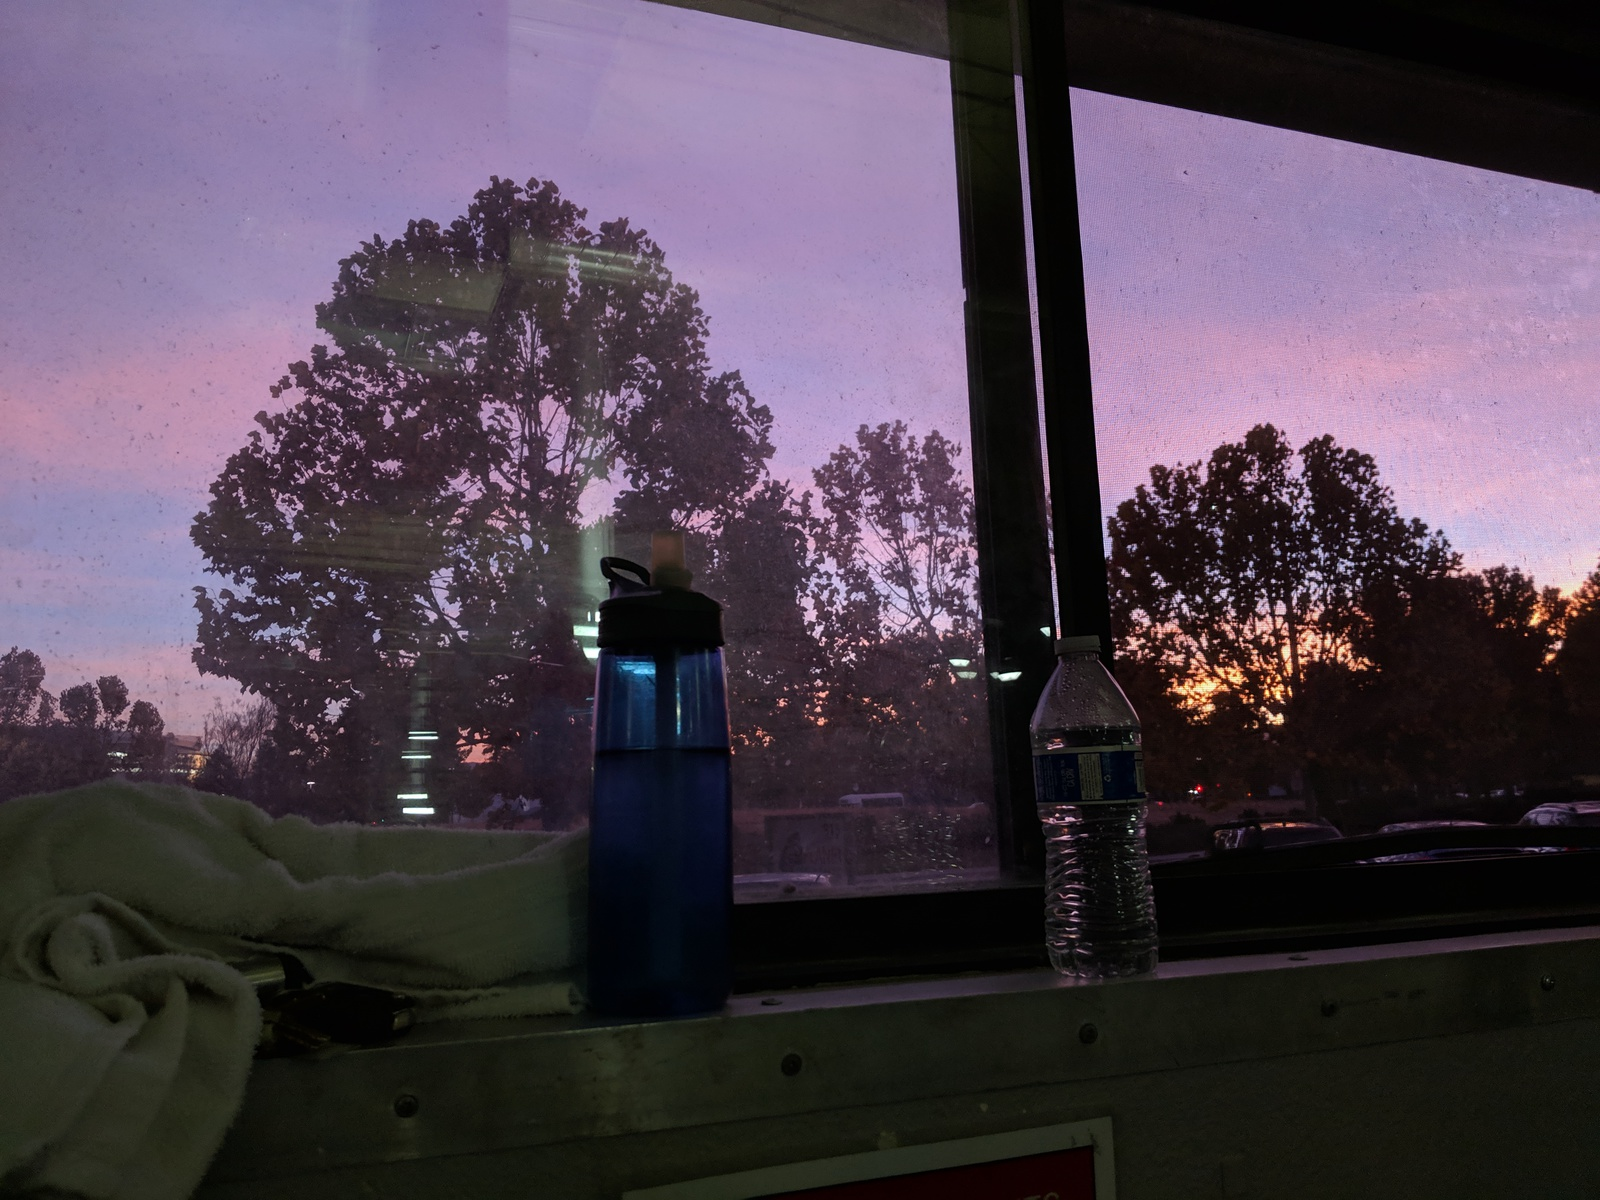 sunset-painted sky through a window, with water bottles and other gym accoutrements in the foreground